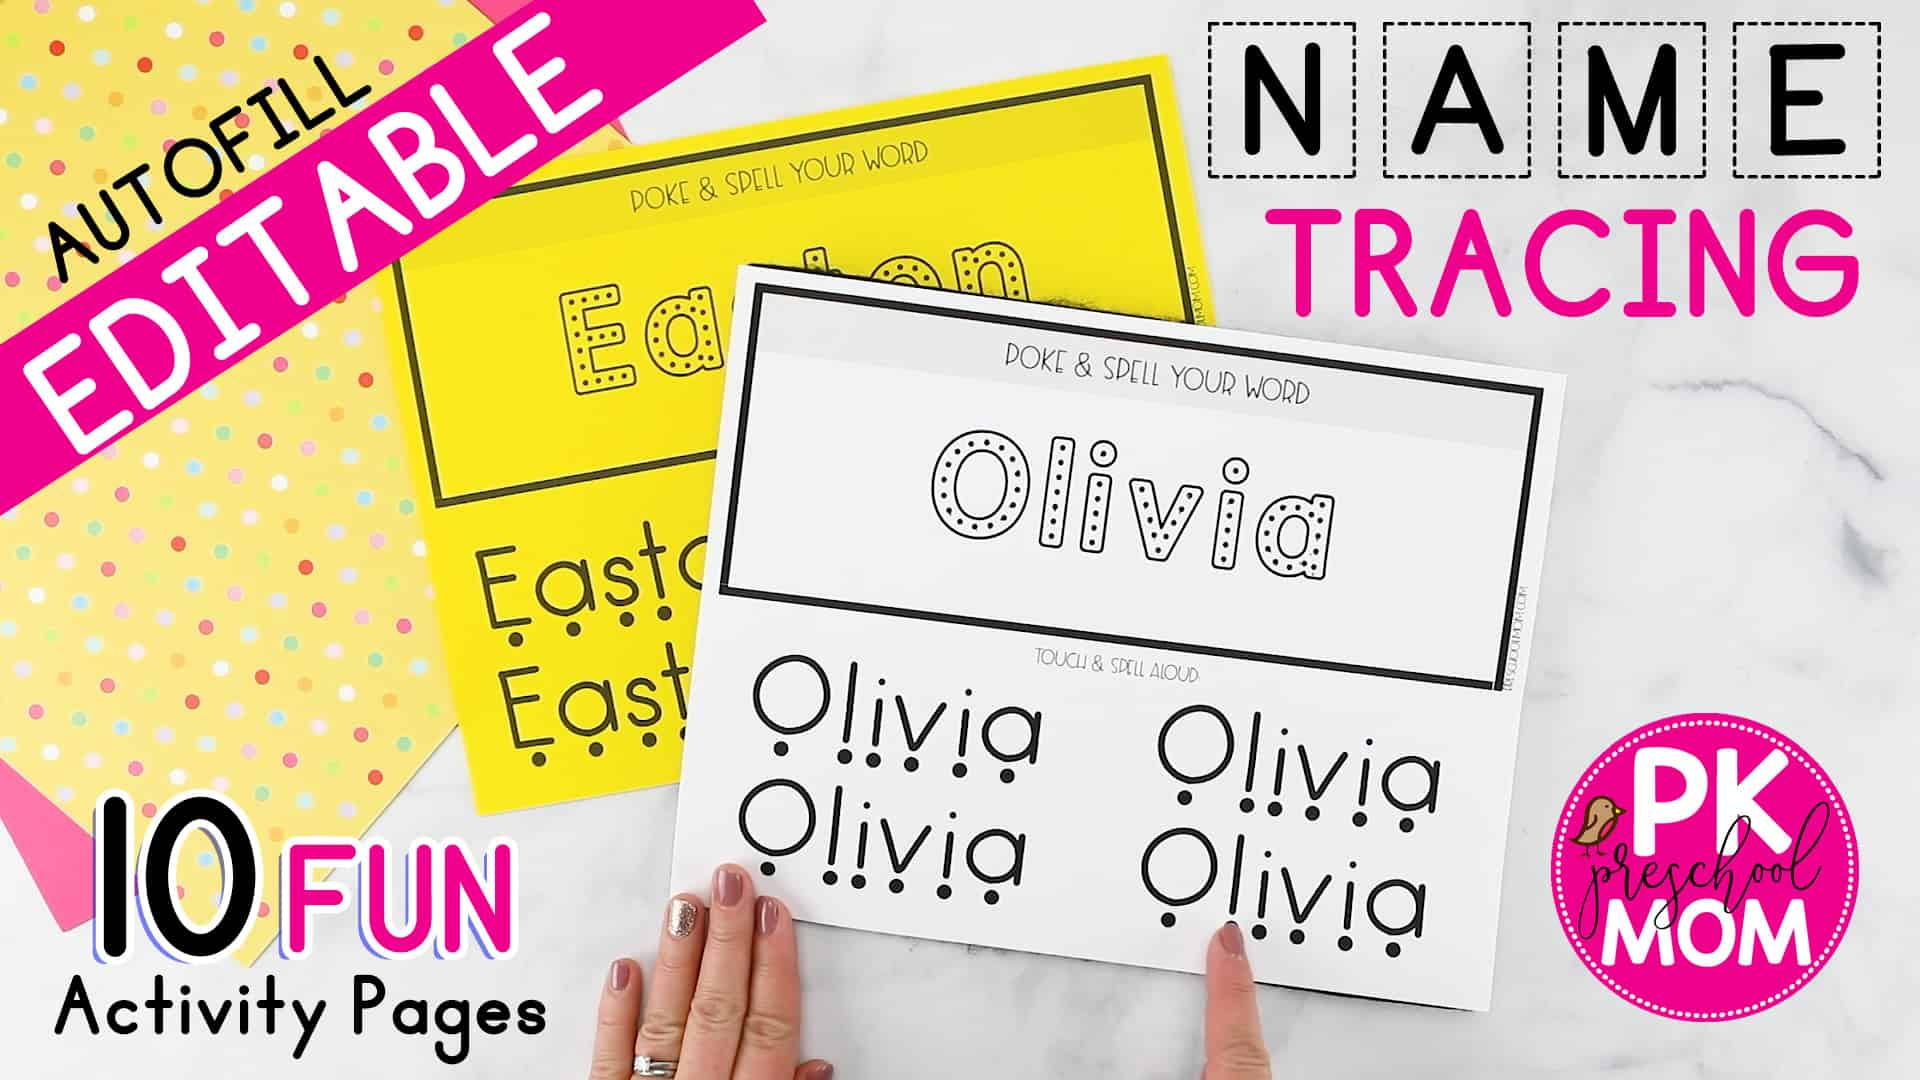 Name Tracing Worksheets - Preschool Mom within Name Tracing Olivia